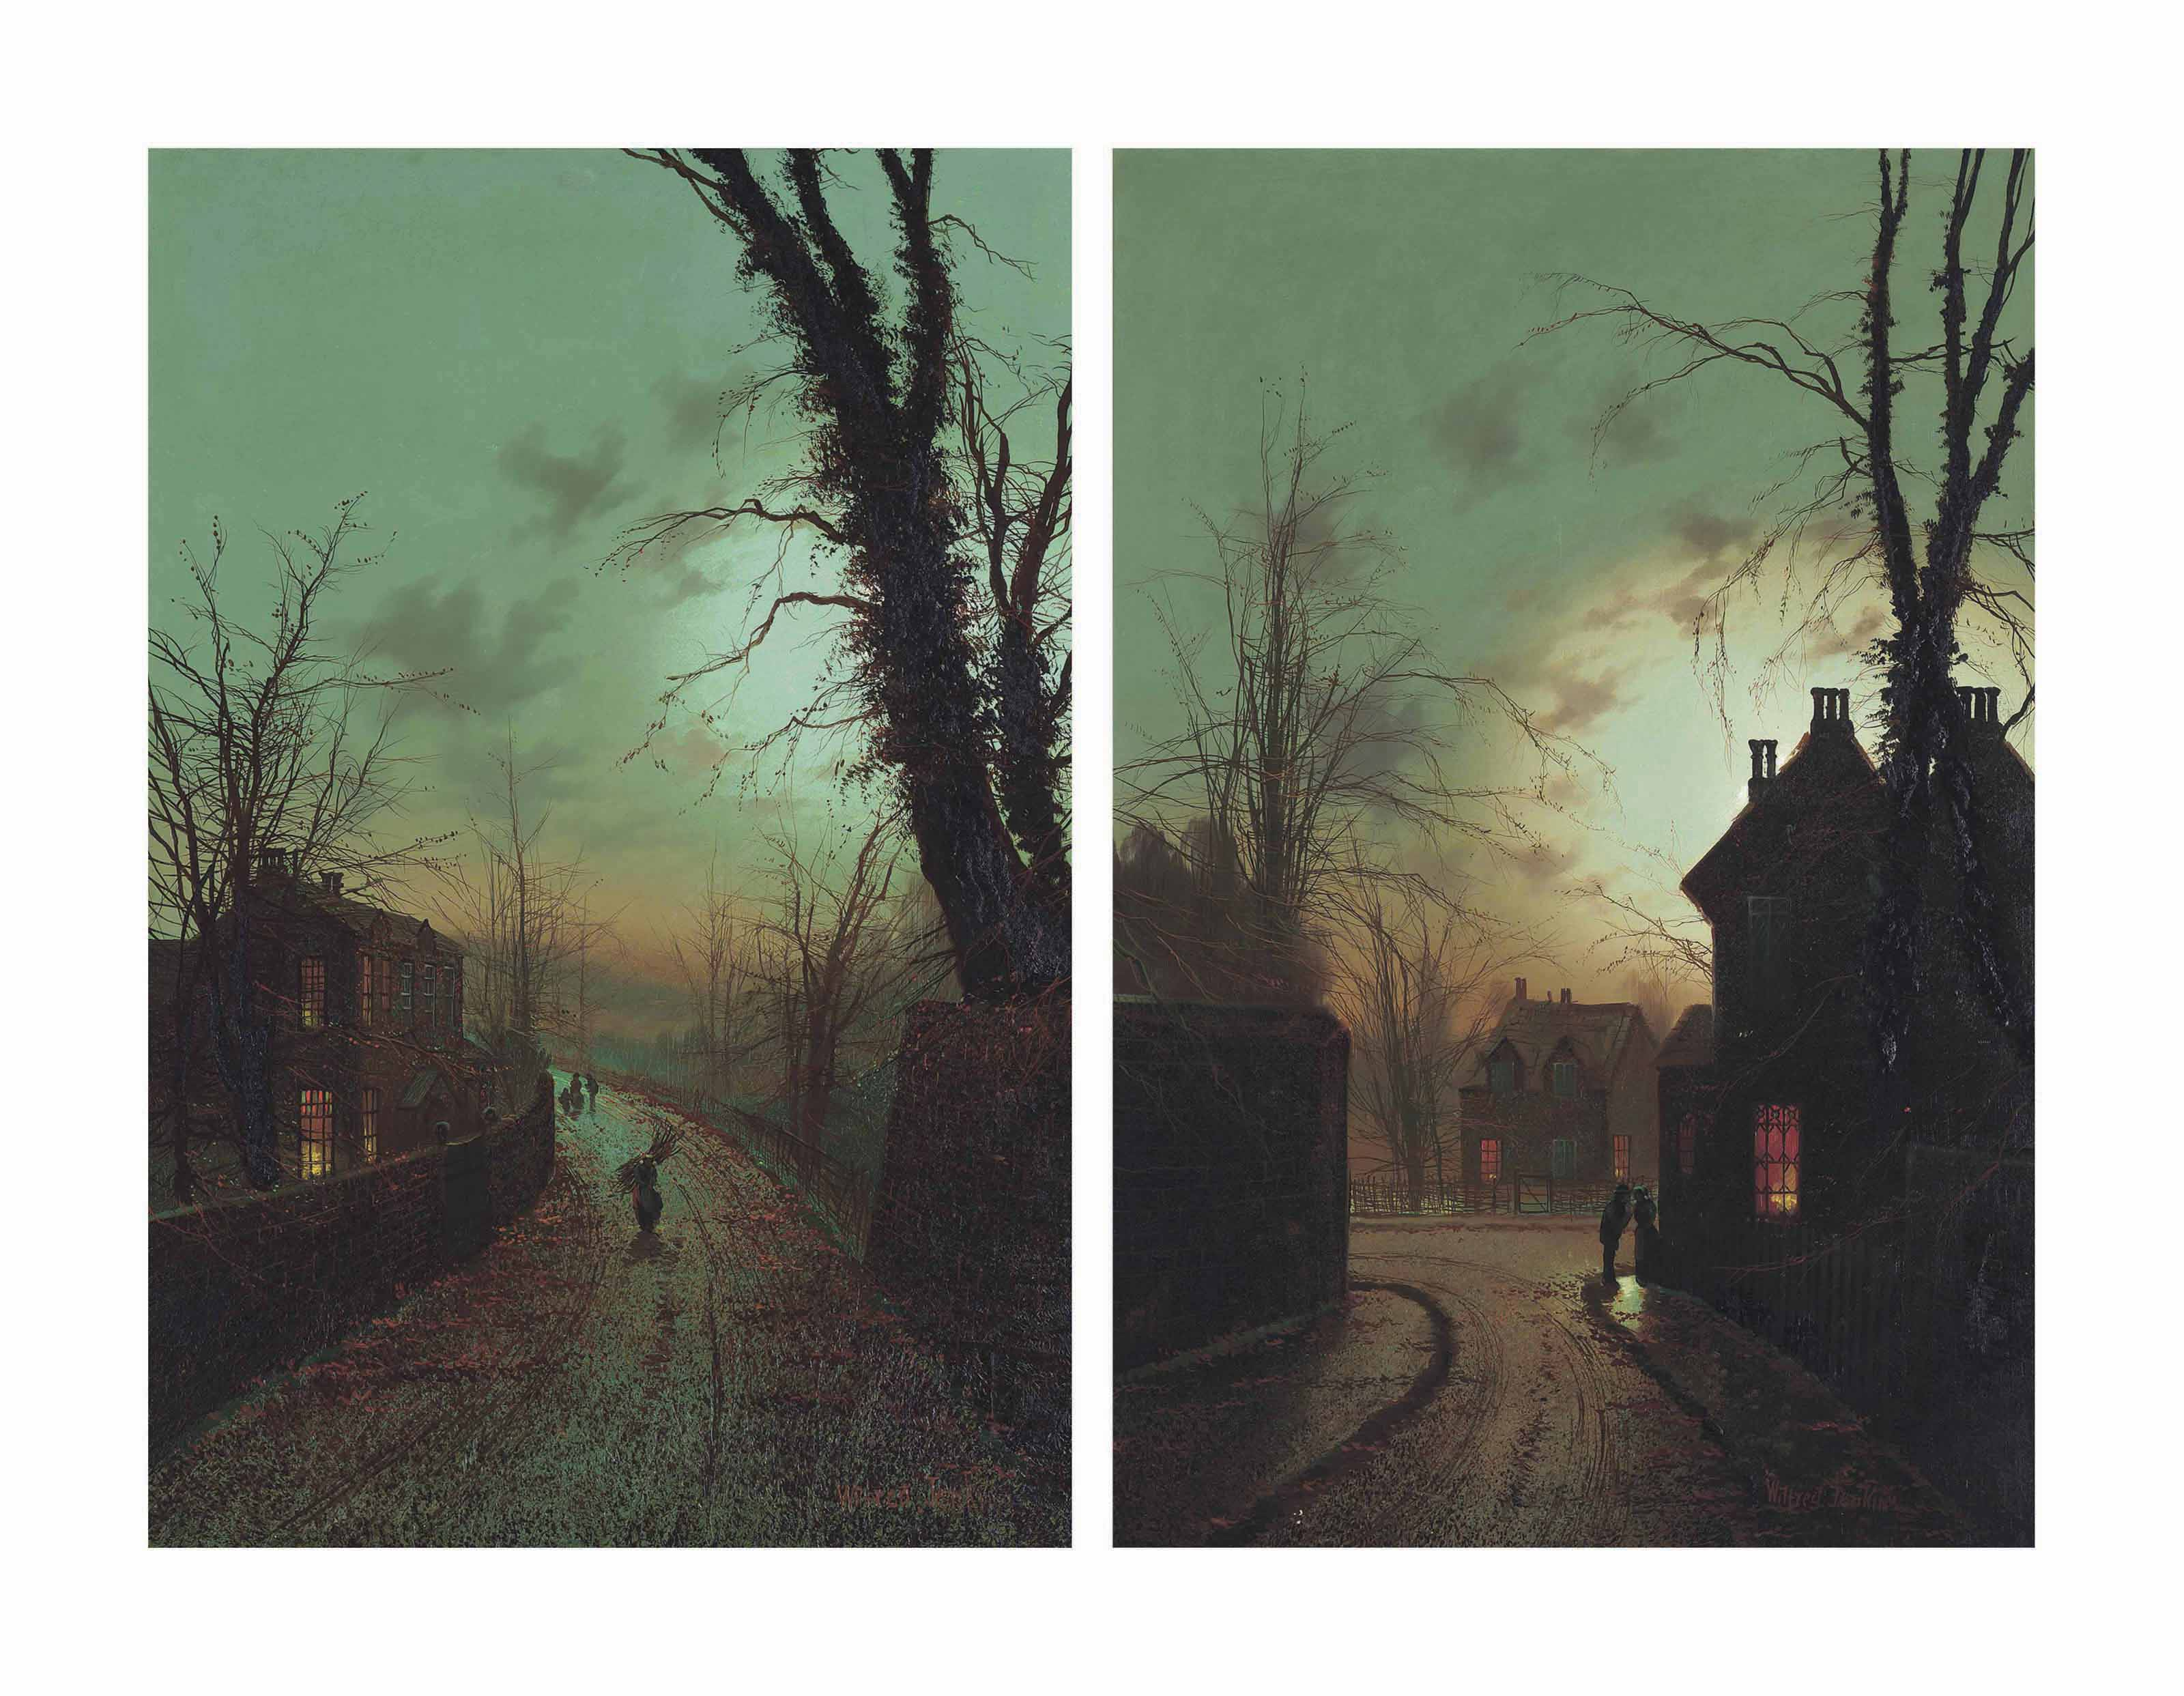 A moonlit street with a peasant carrying firewood; and A moonlit scene with a couple conversing on a street corner